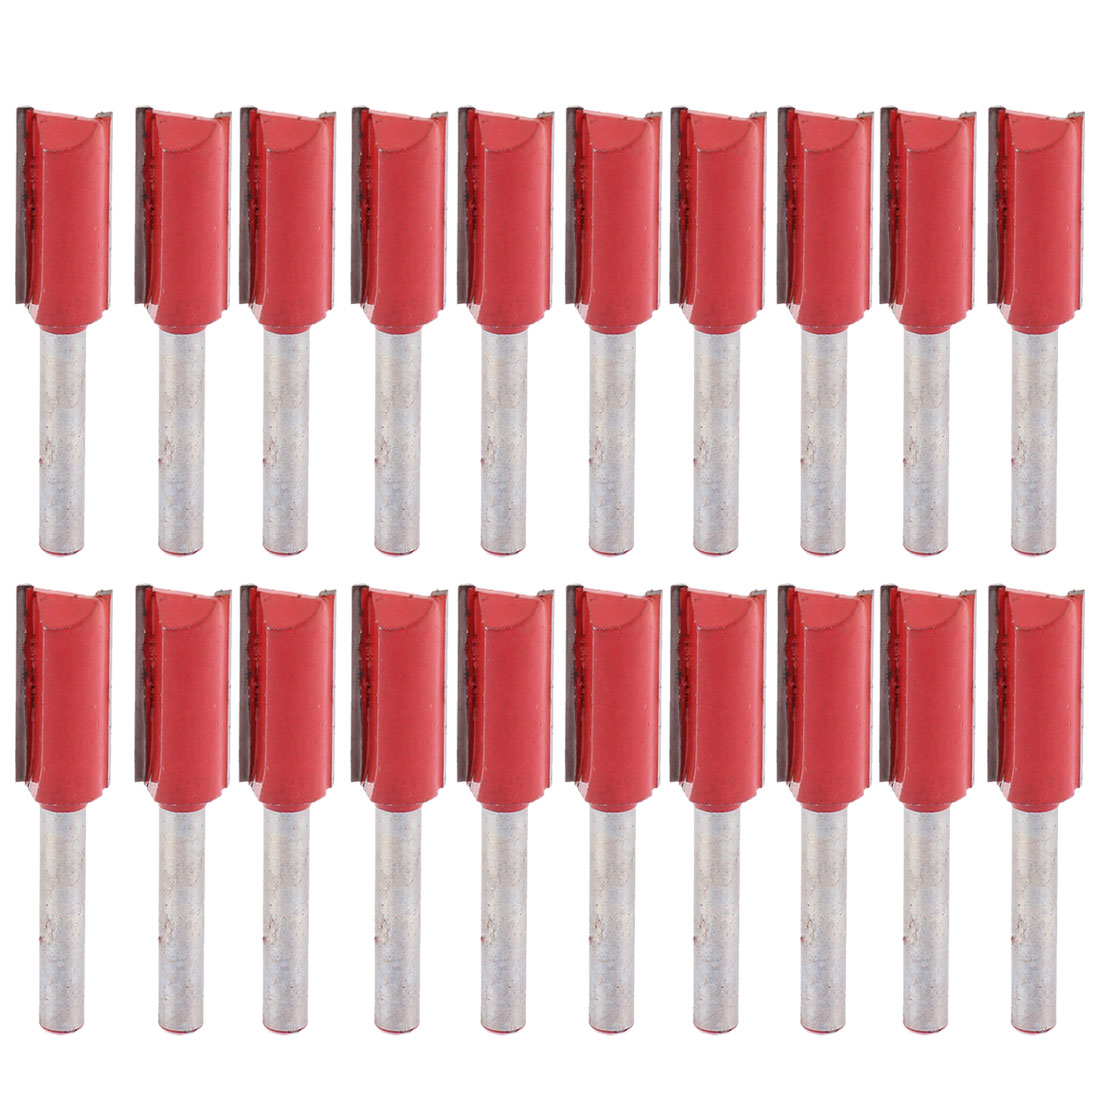 """20pcs 1/4"""" x 1/2"""" Double Flutes Straight Router Bits Cutter Tool for Woodworker"""